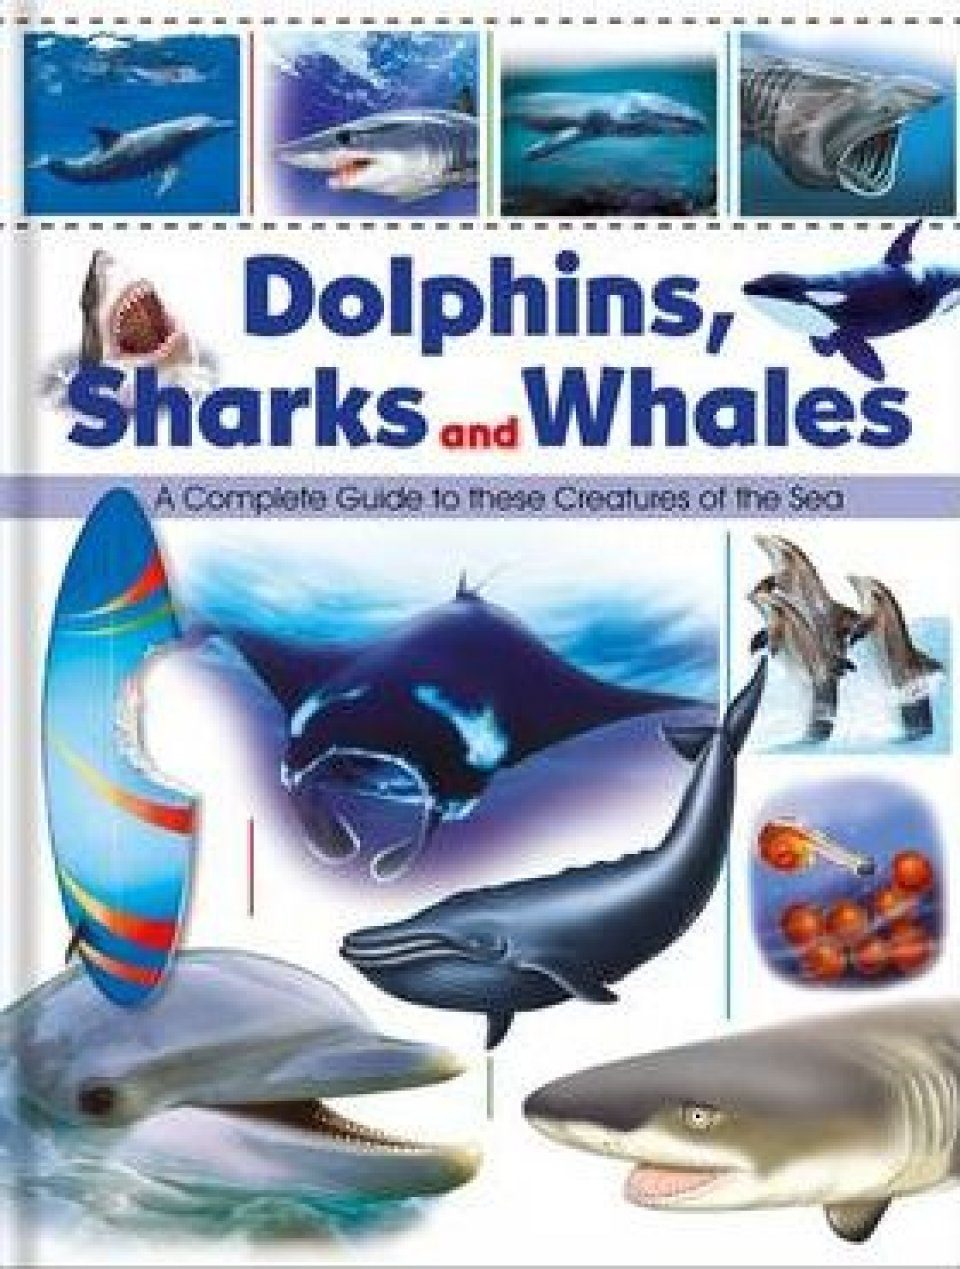 Dolphins, Sharks and Whales